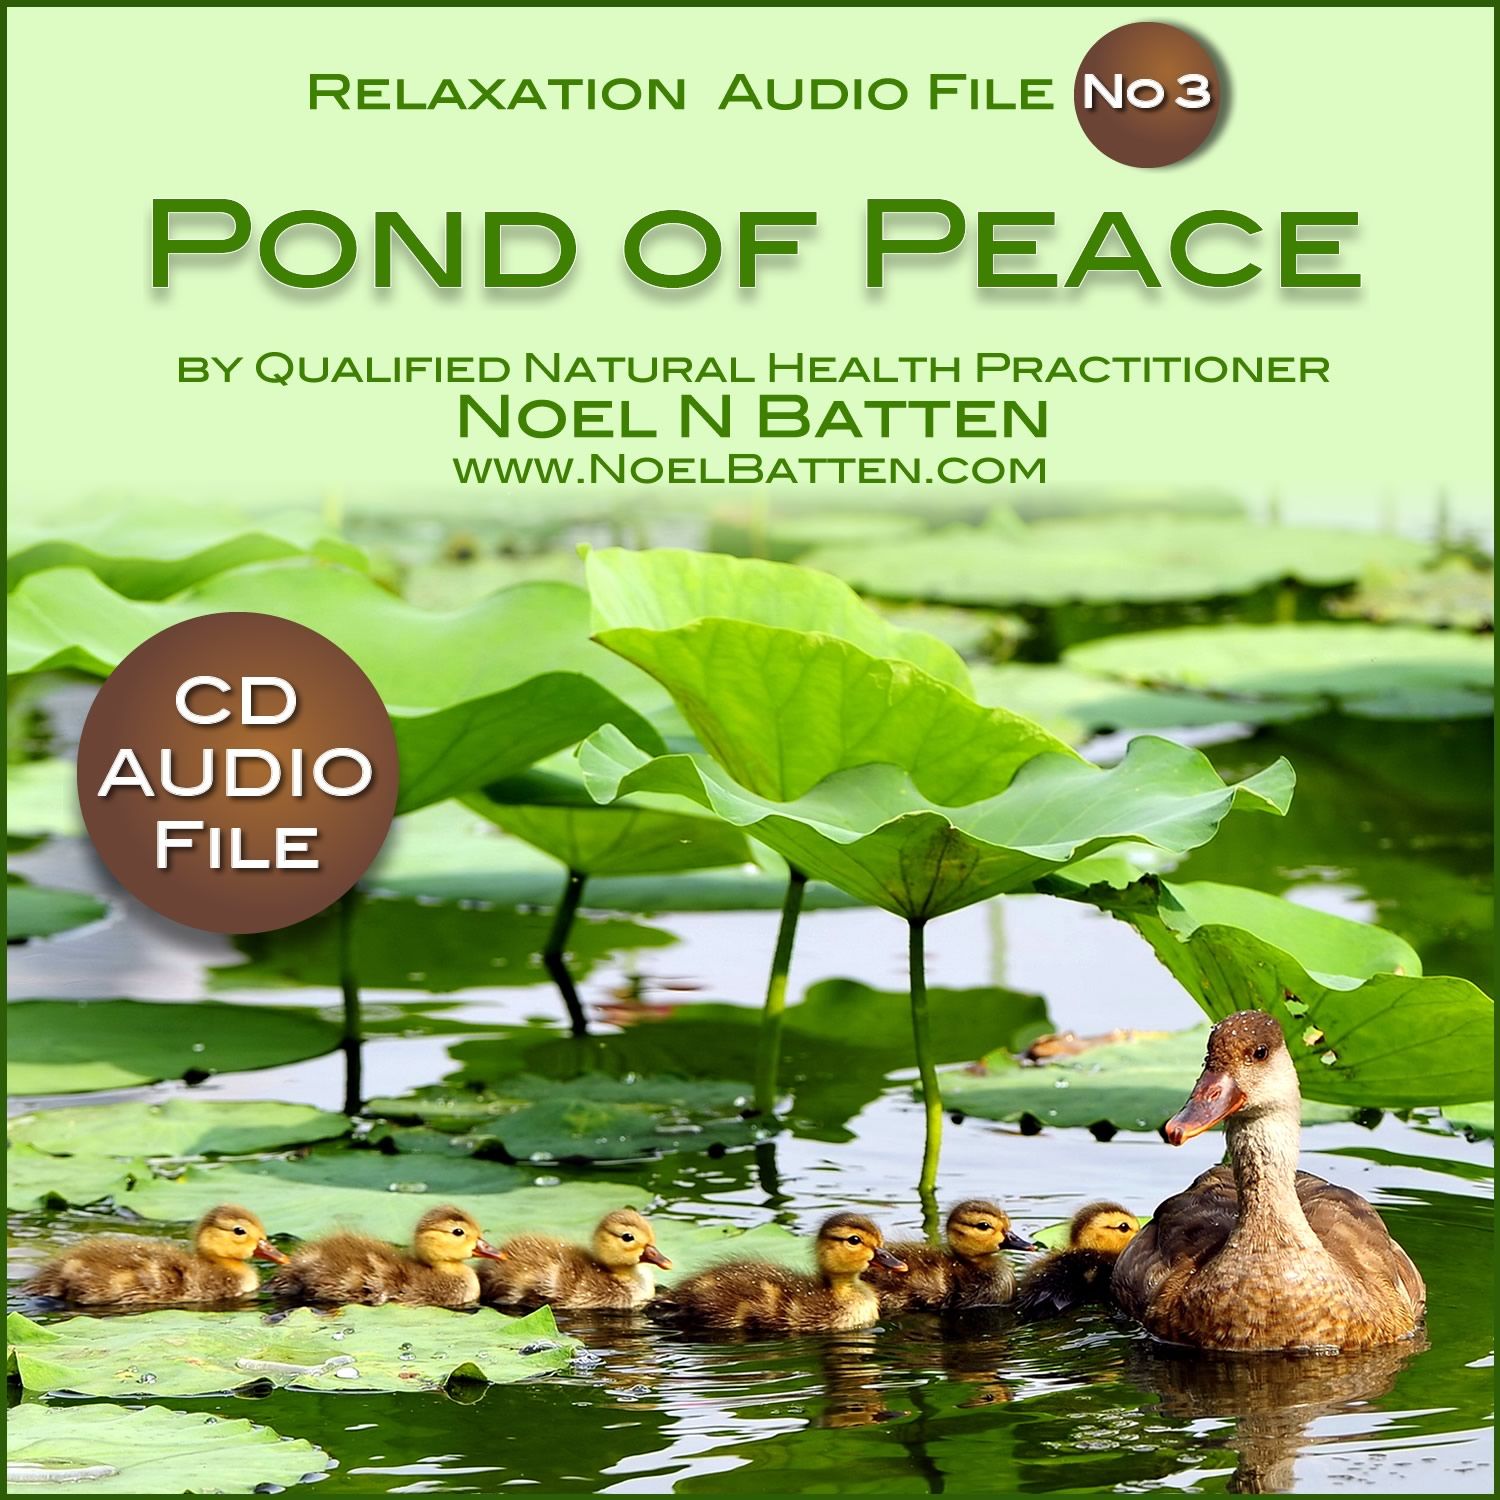 The Pond Of Peace MP3 Audio File-32